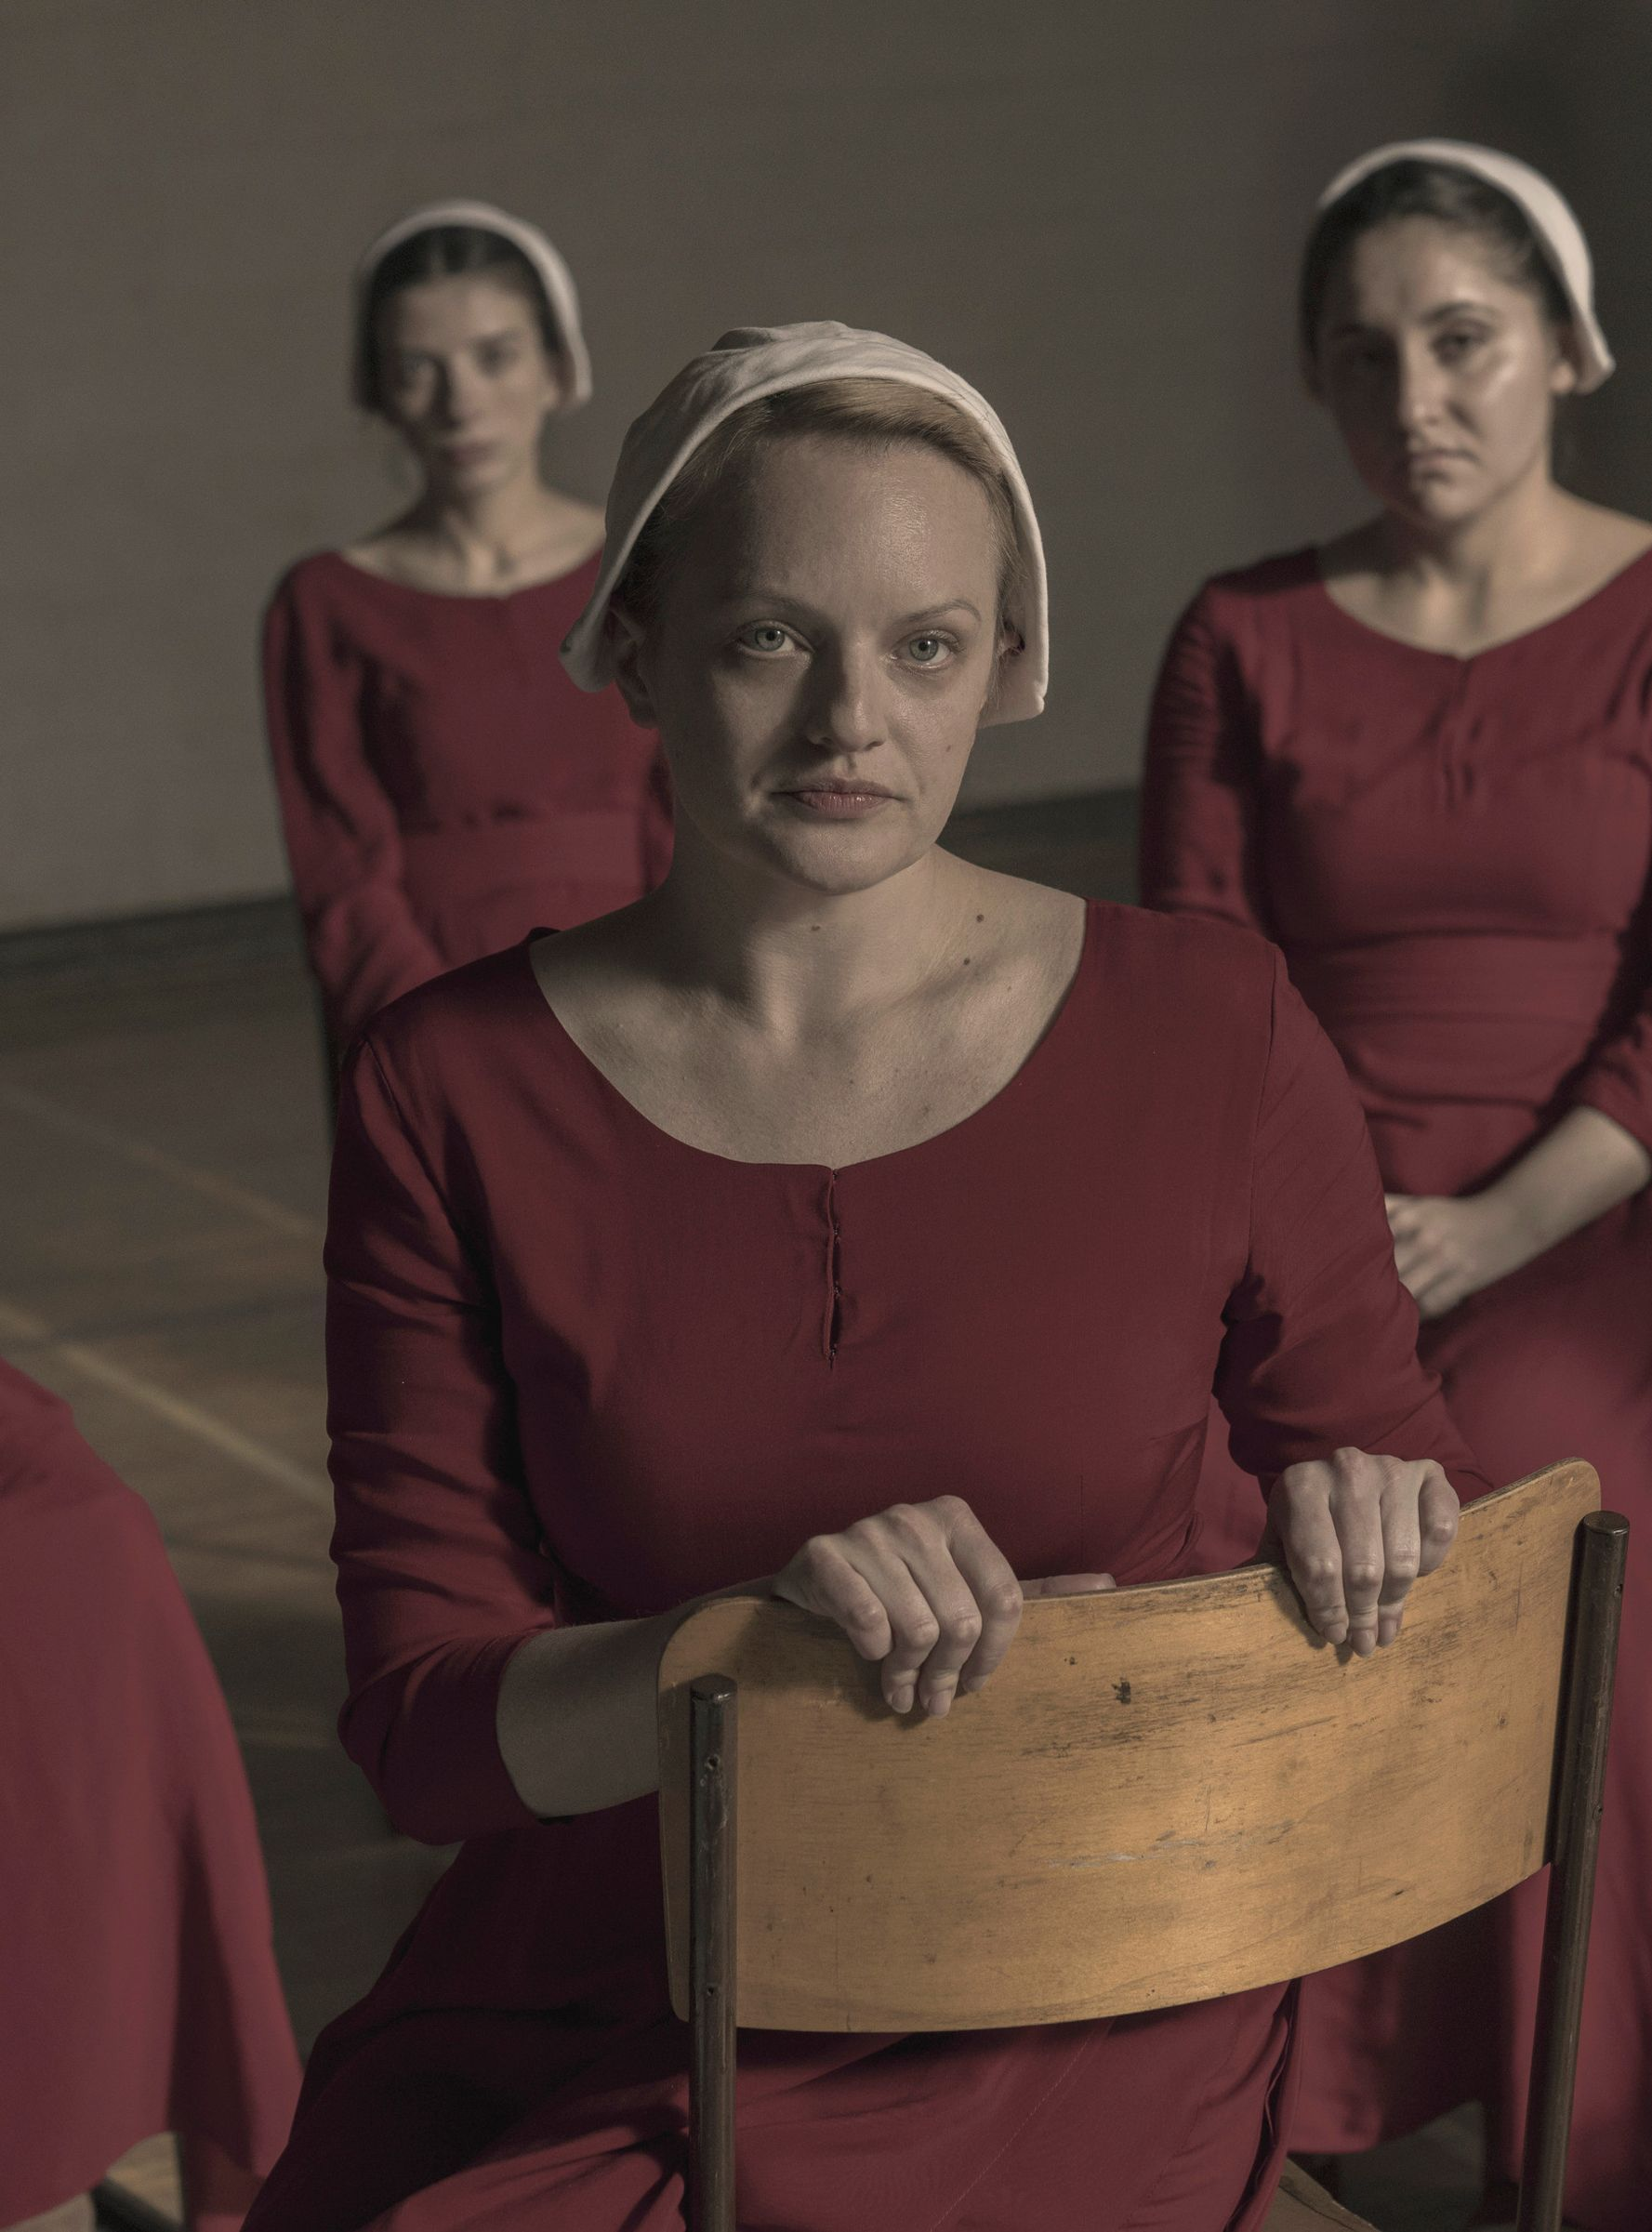 This Week S Handmaid S Tale Revealed The Real Problem With Ending Gilead Dear White People Dear White Best Tv Shows